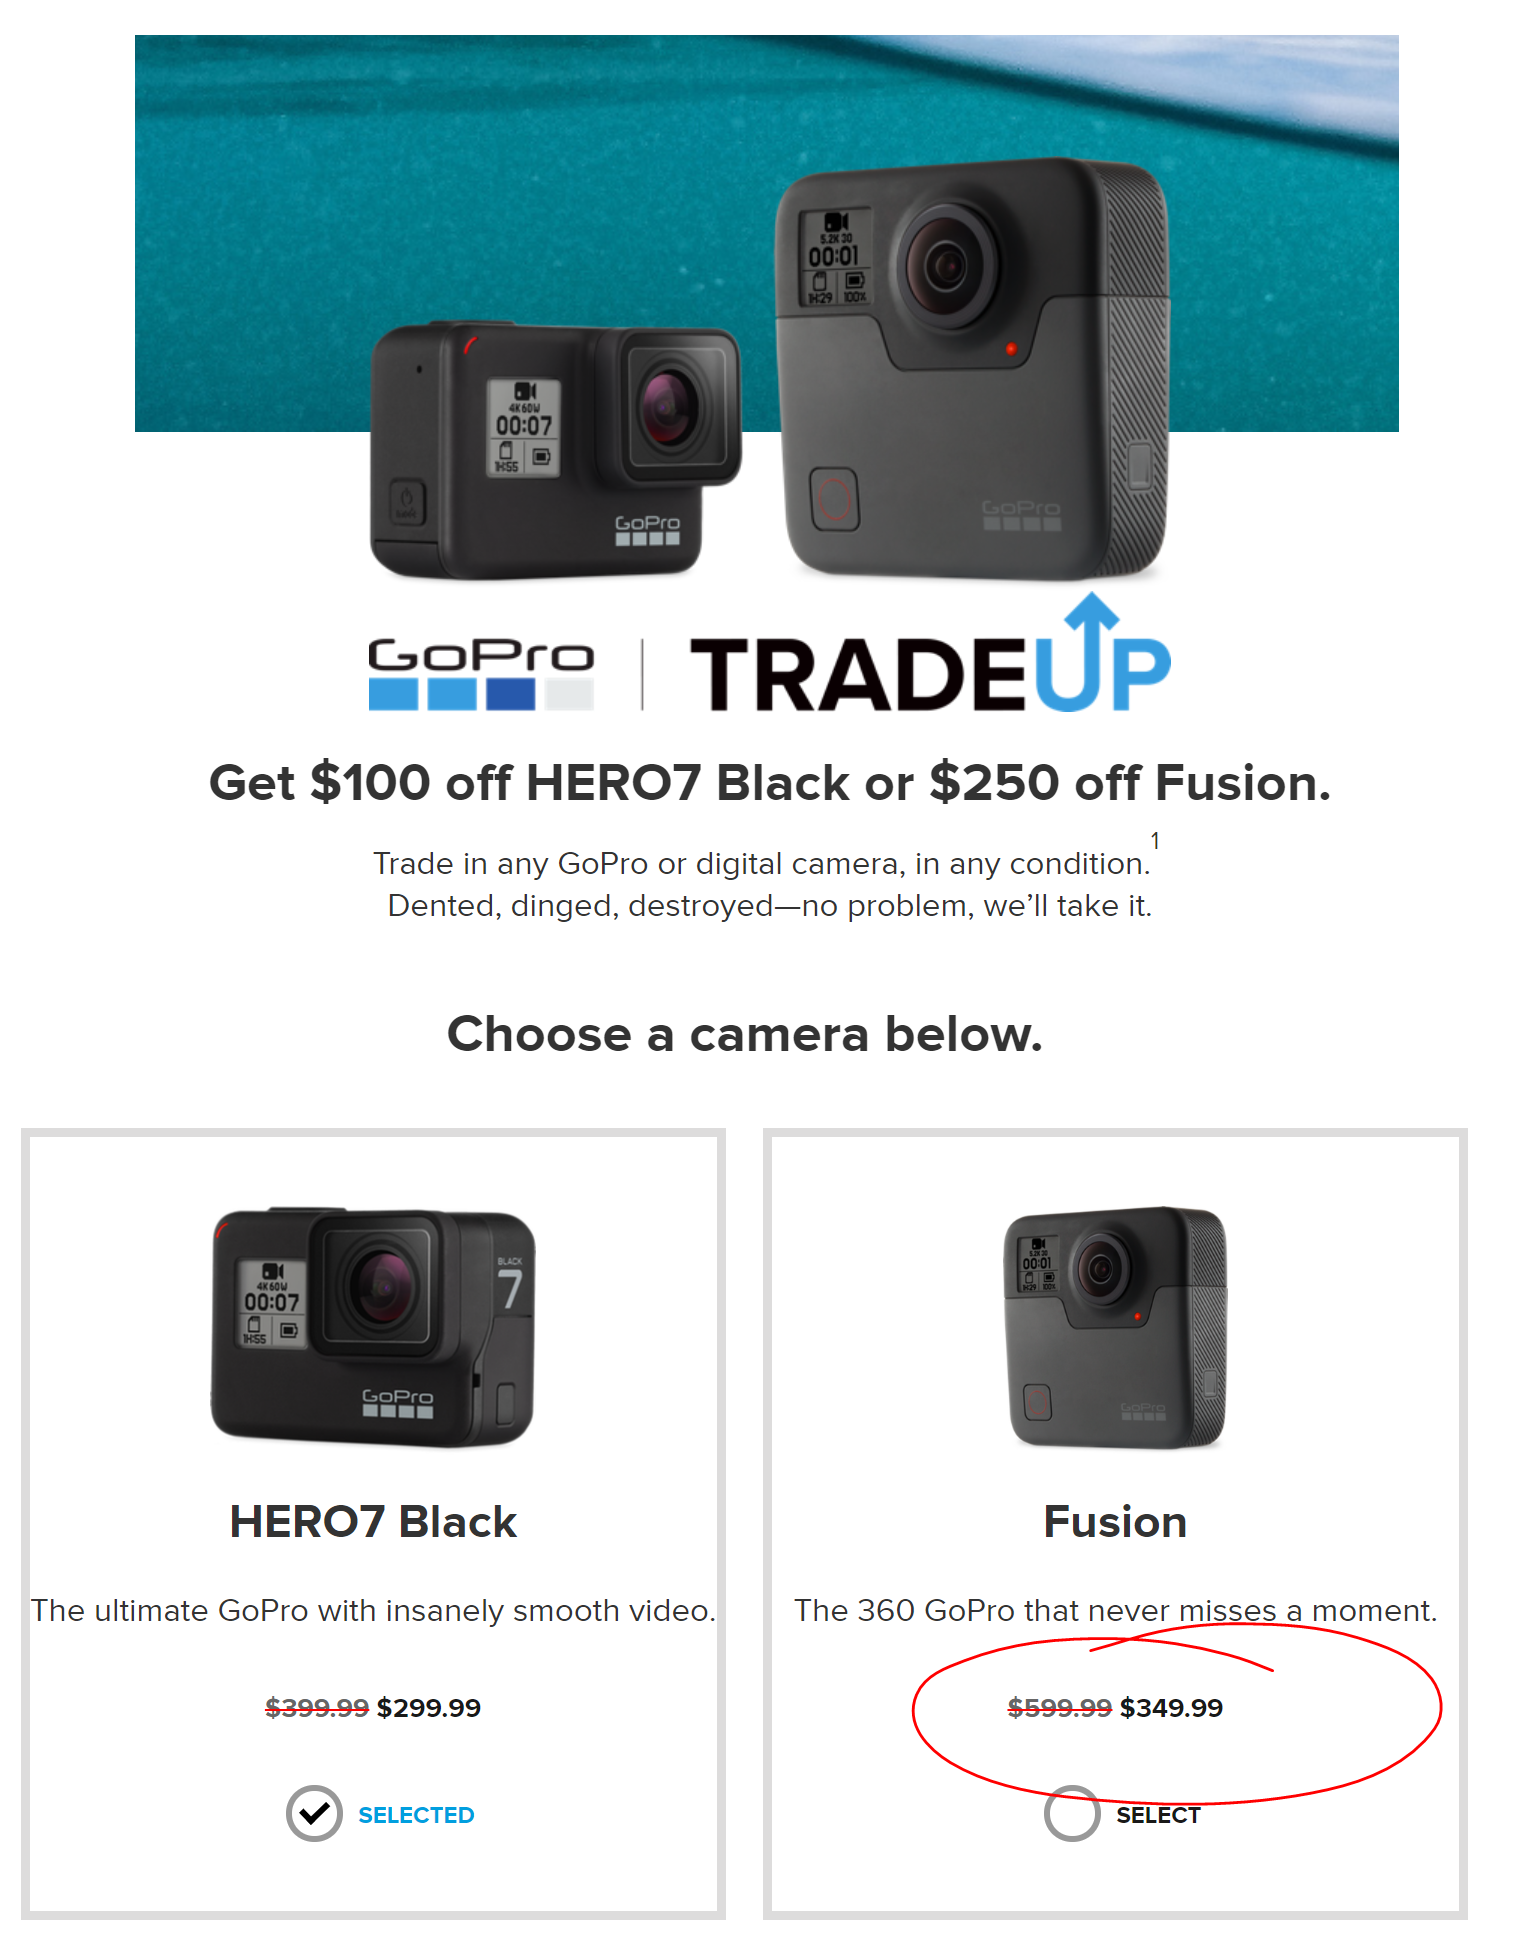 gopro+tradeup+fusion+actual+price+bait+and+switch